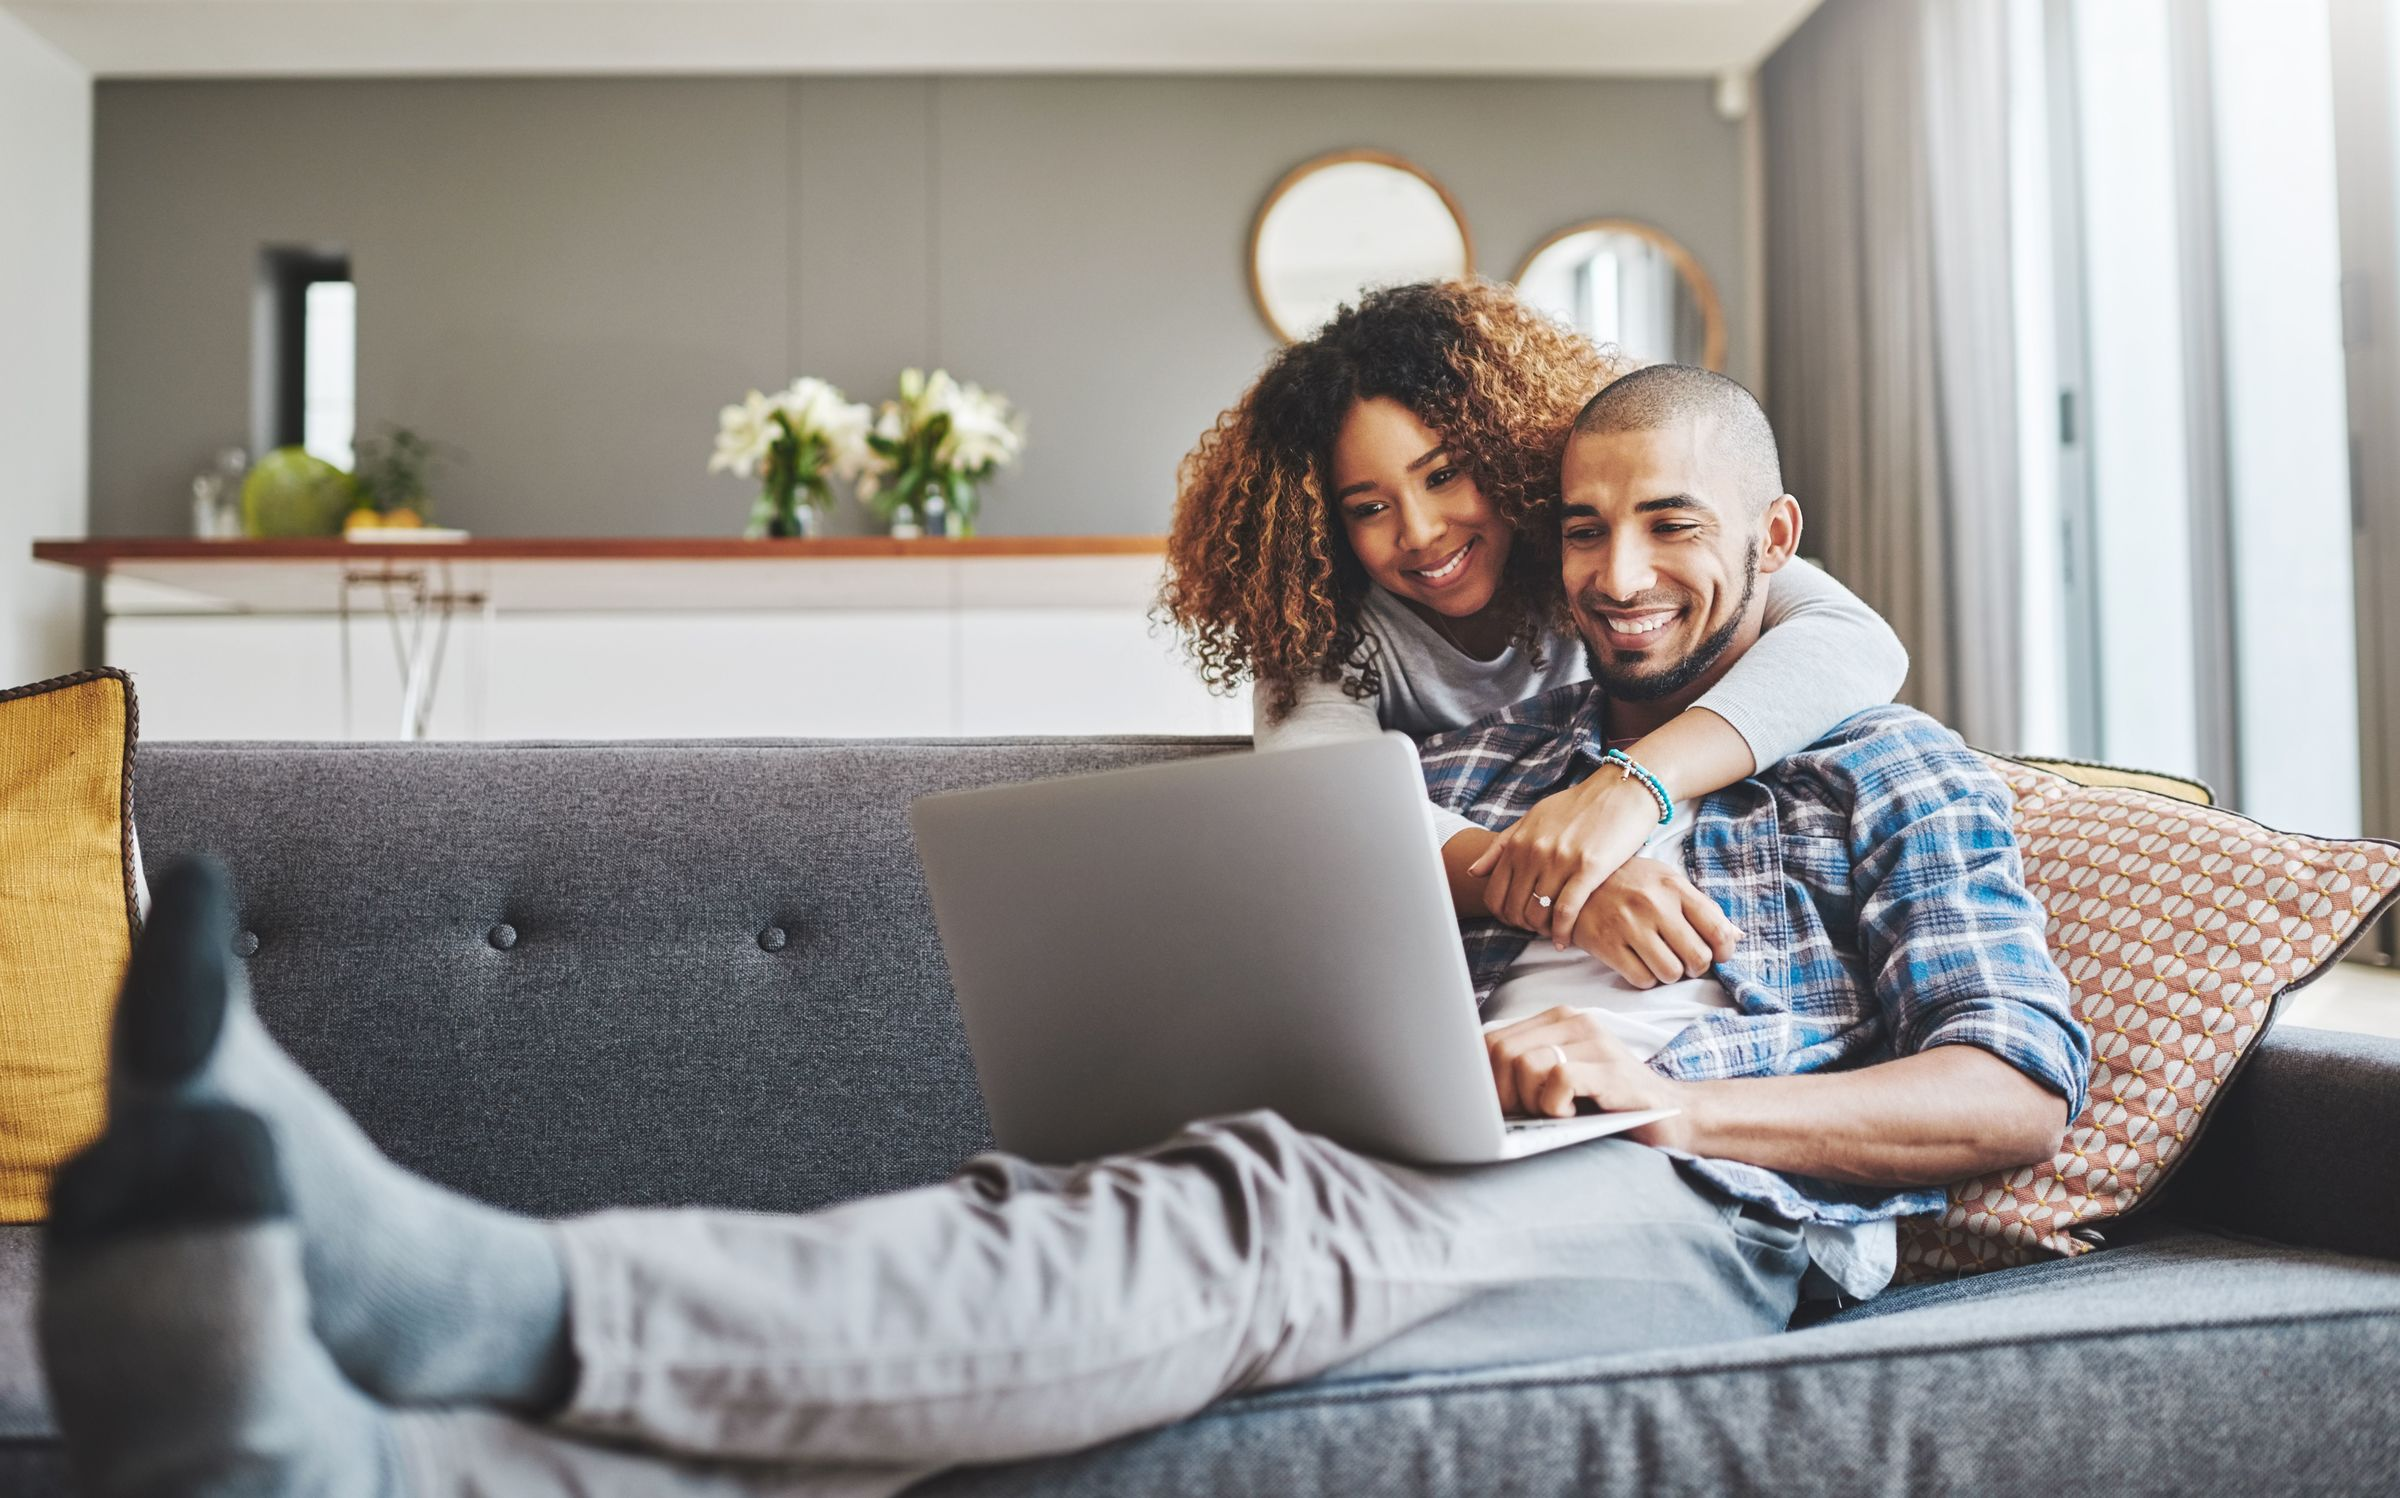 man and woman smiling and looking at a laptop screen